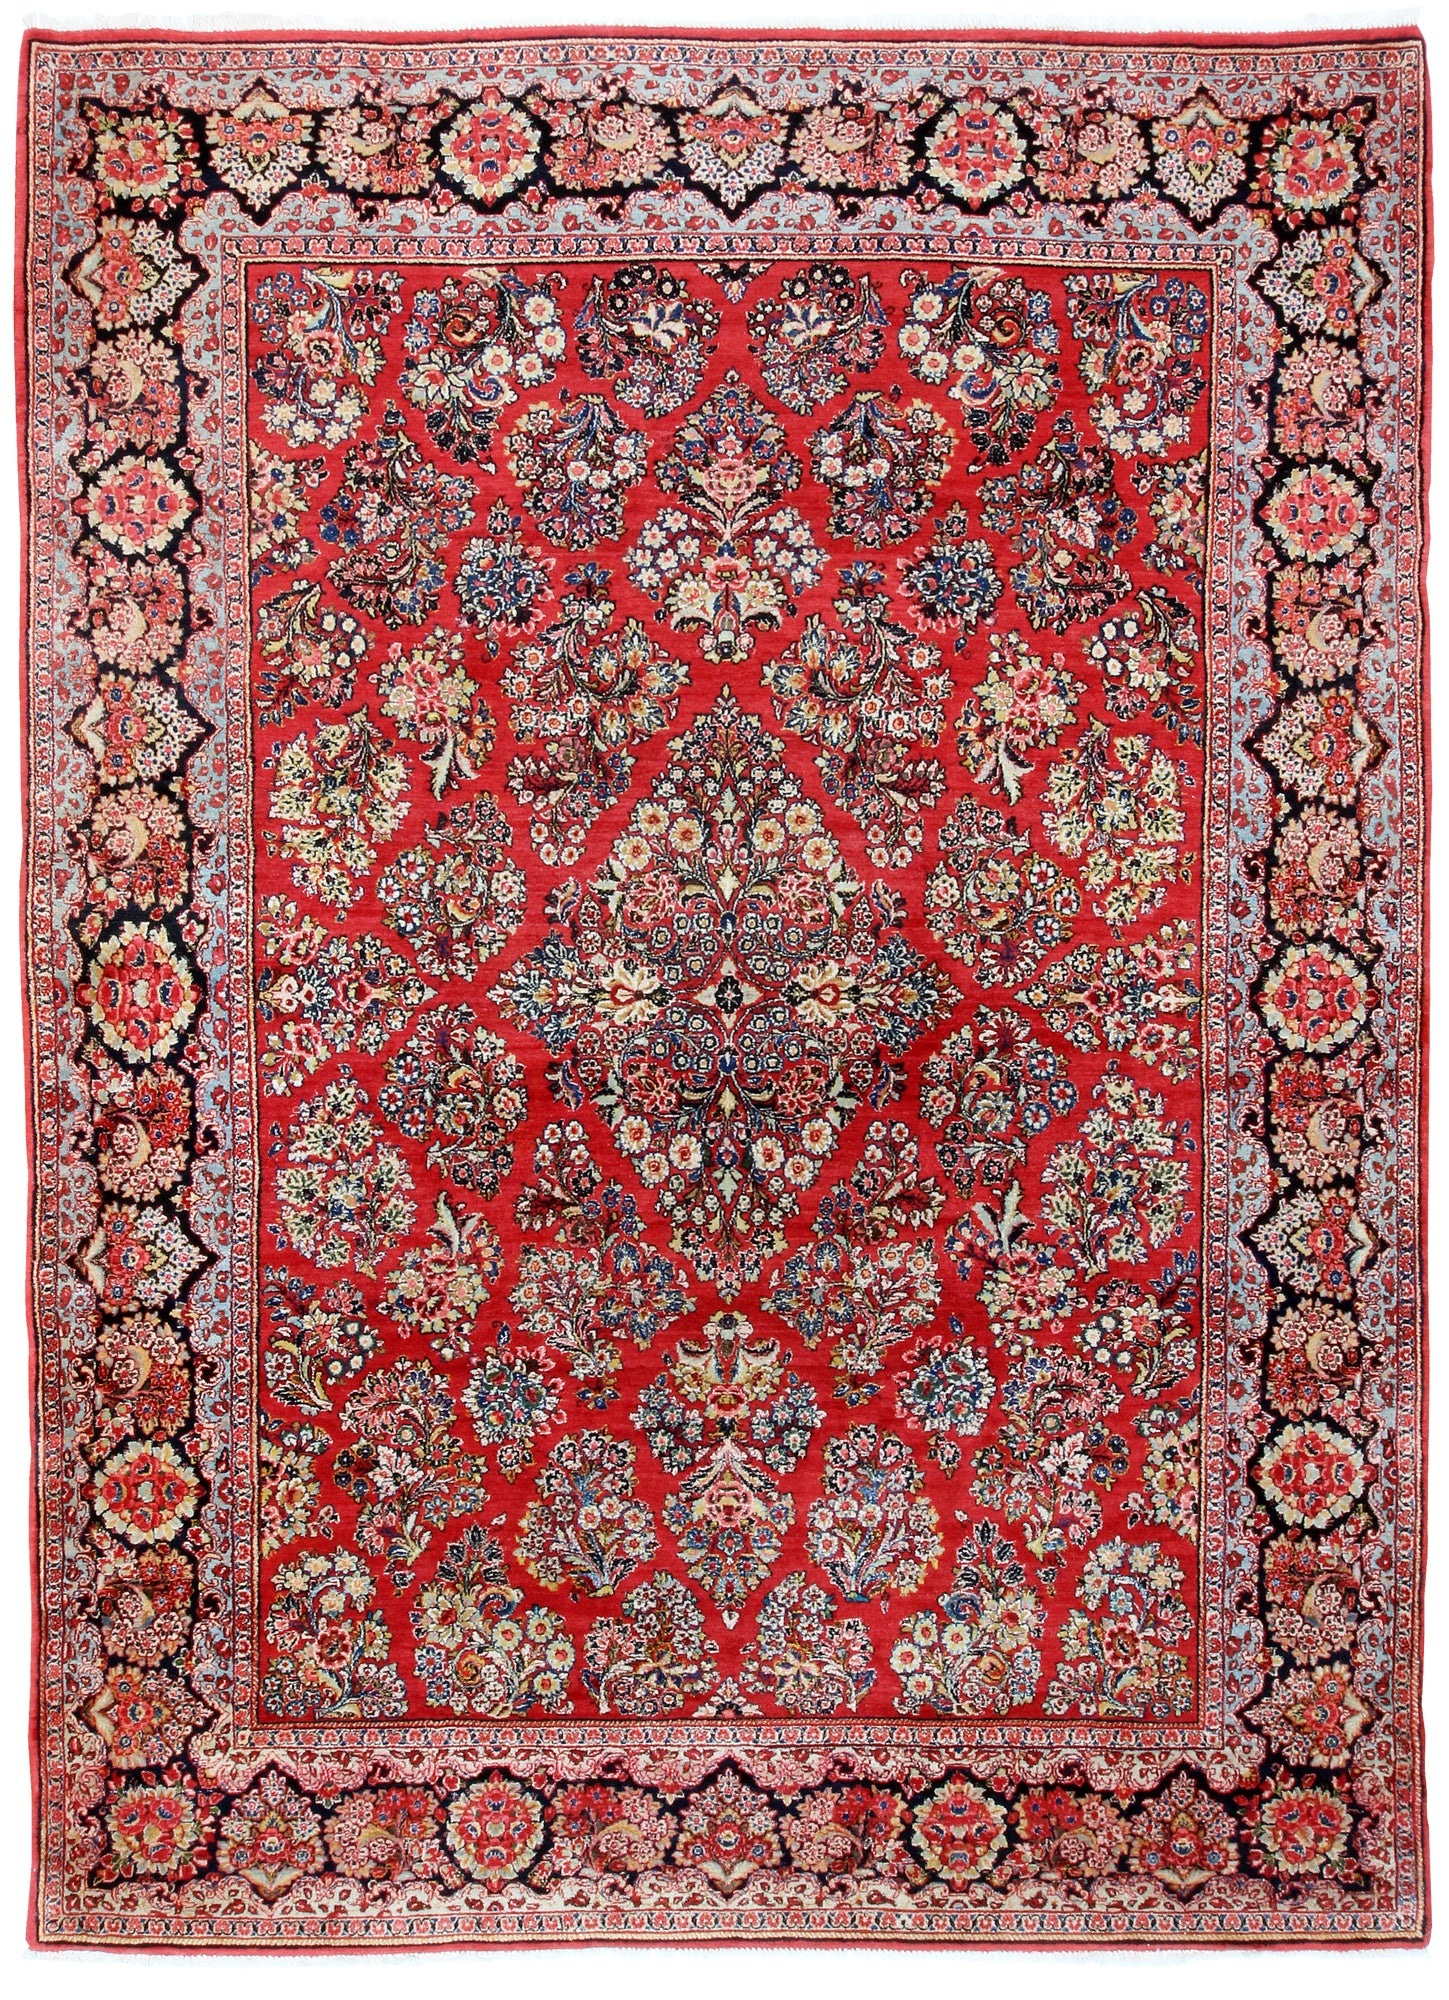 Sarouk Semi-Antique